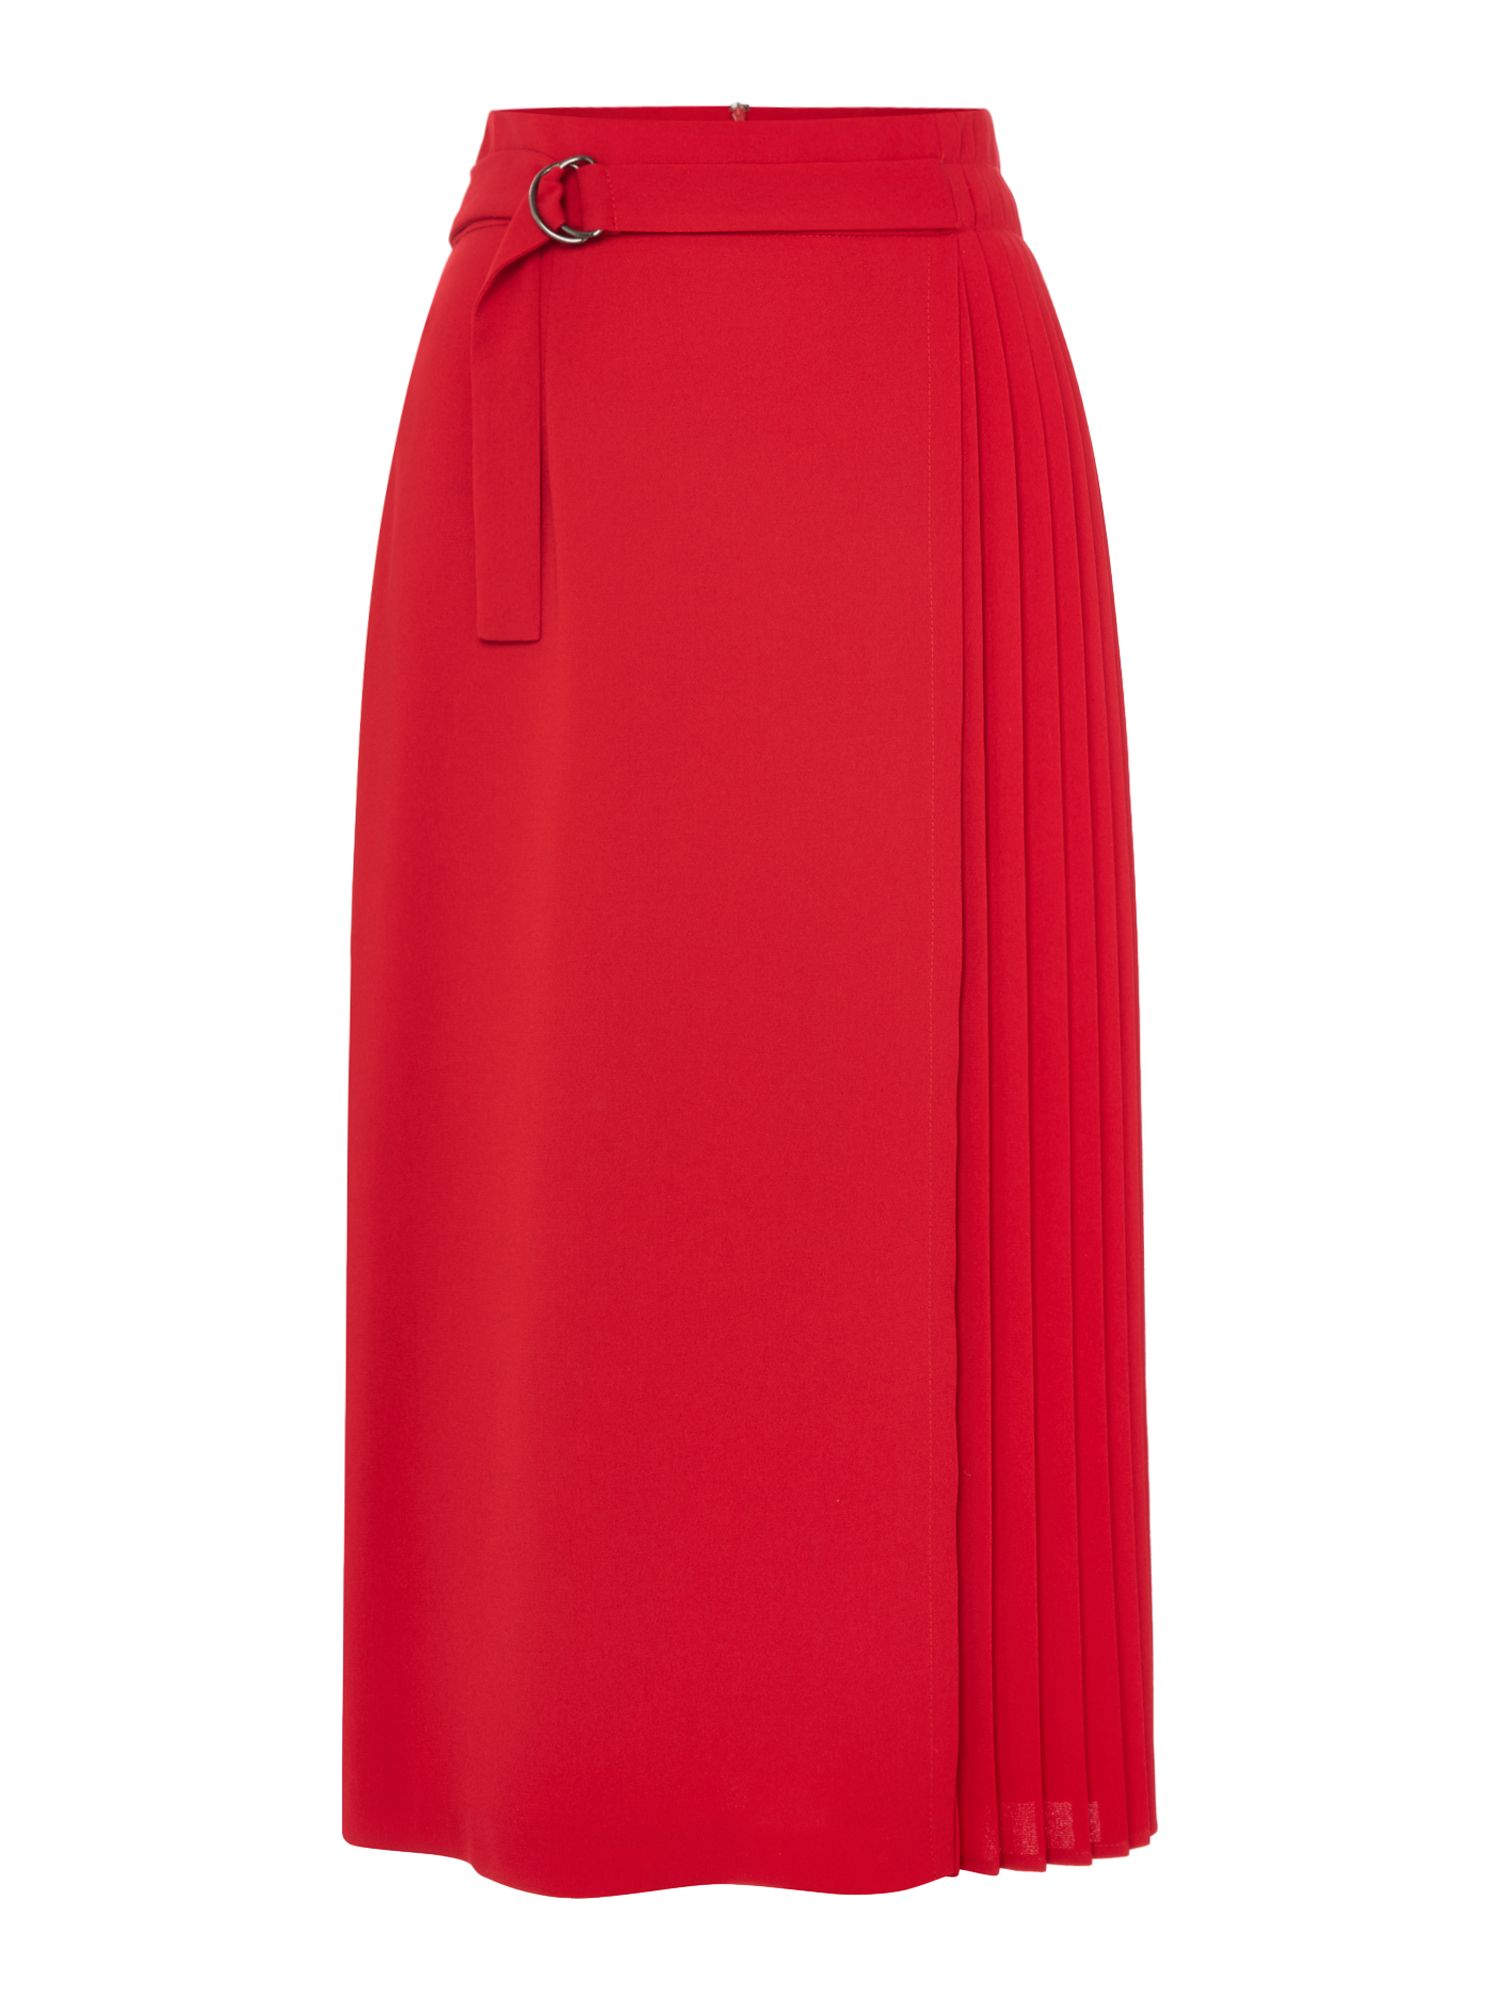 Linea Nova pleated skirt, Red